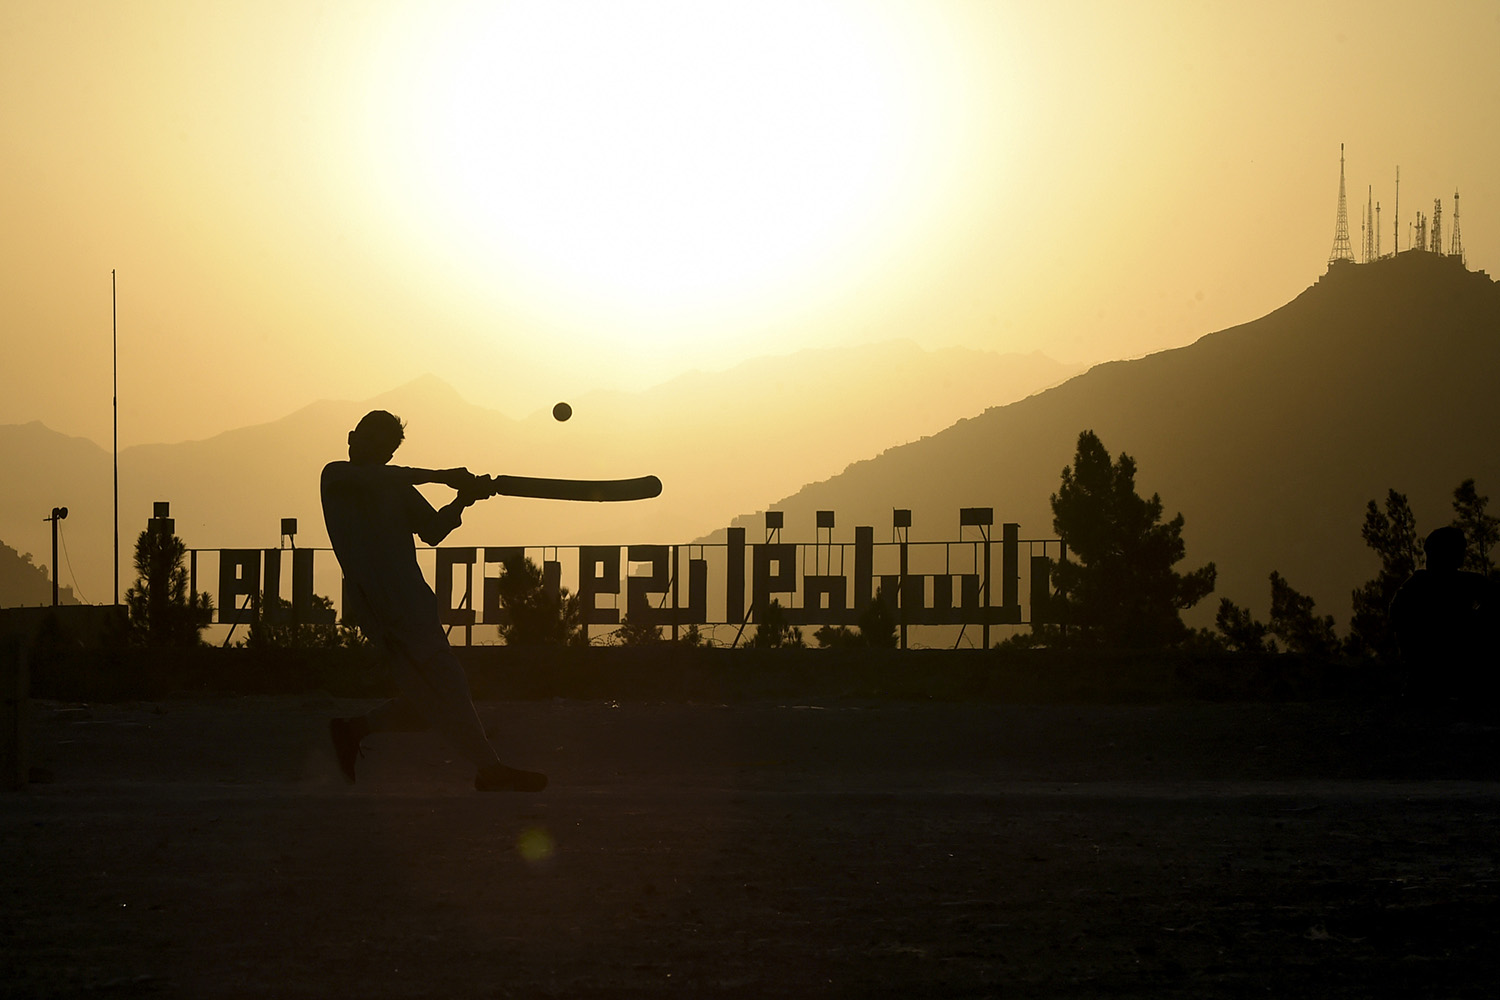 Youths play cricket at sunset at the Nader Khan hilltop in Kabul on Sept. 22. WAKIL KOHSAR/AFP via Getty Images